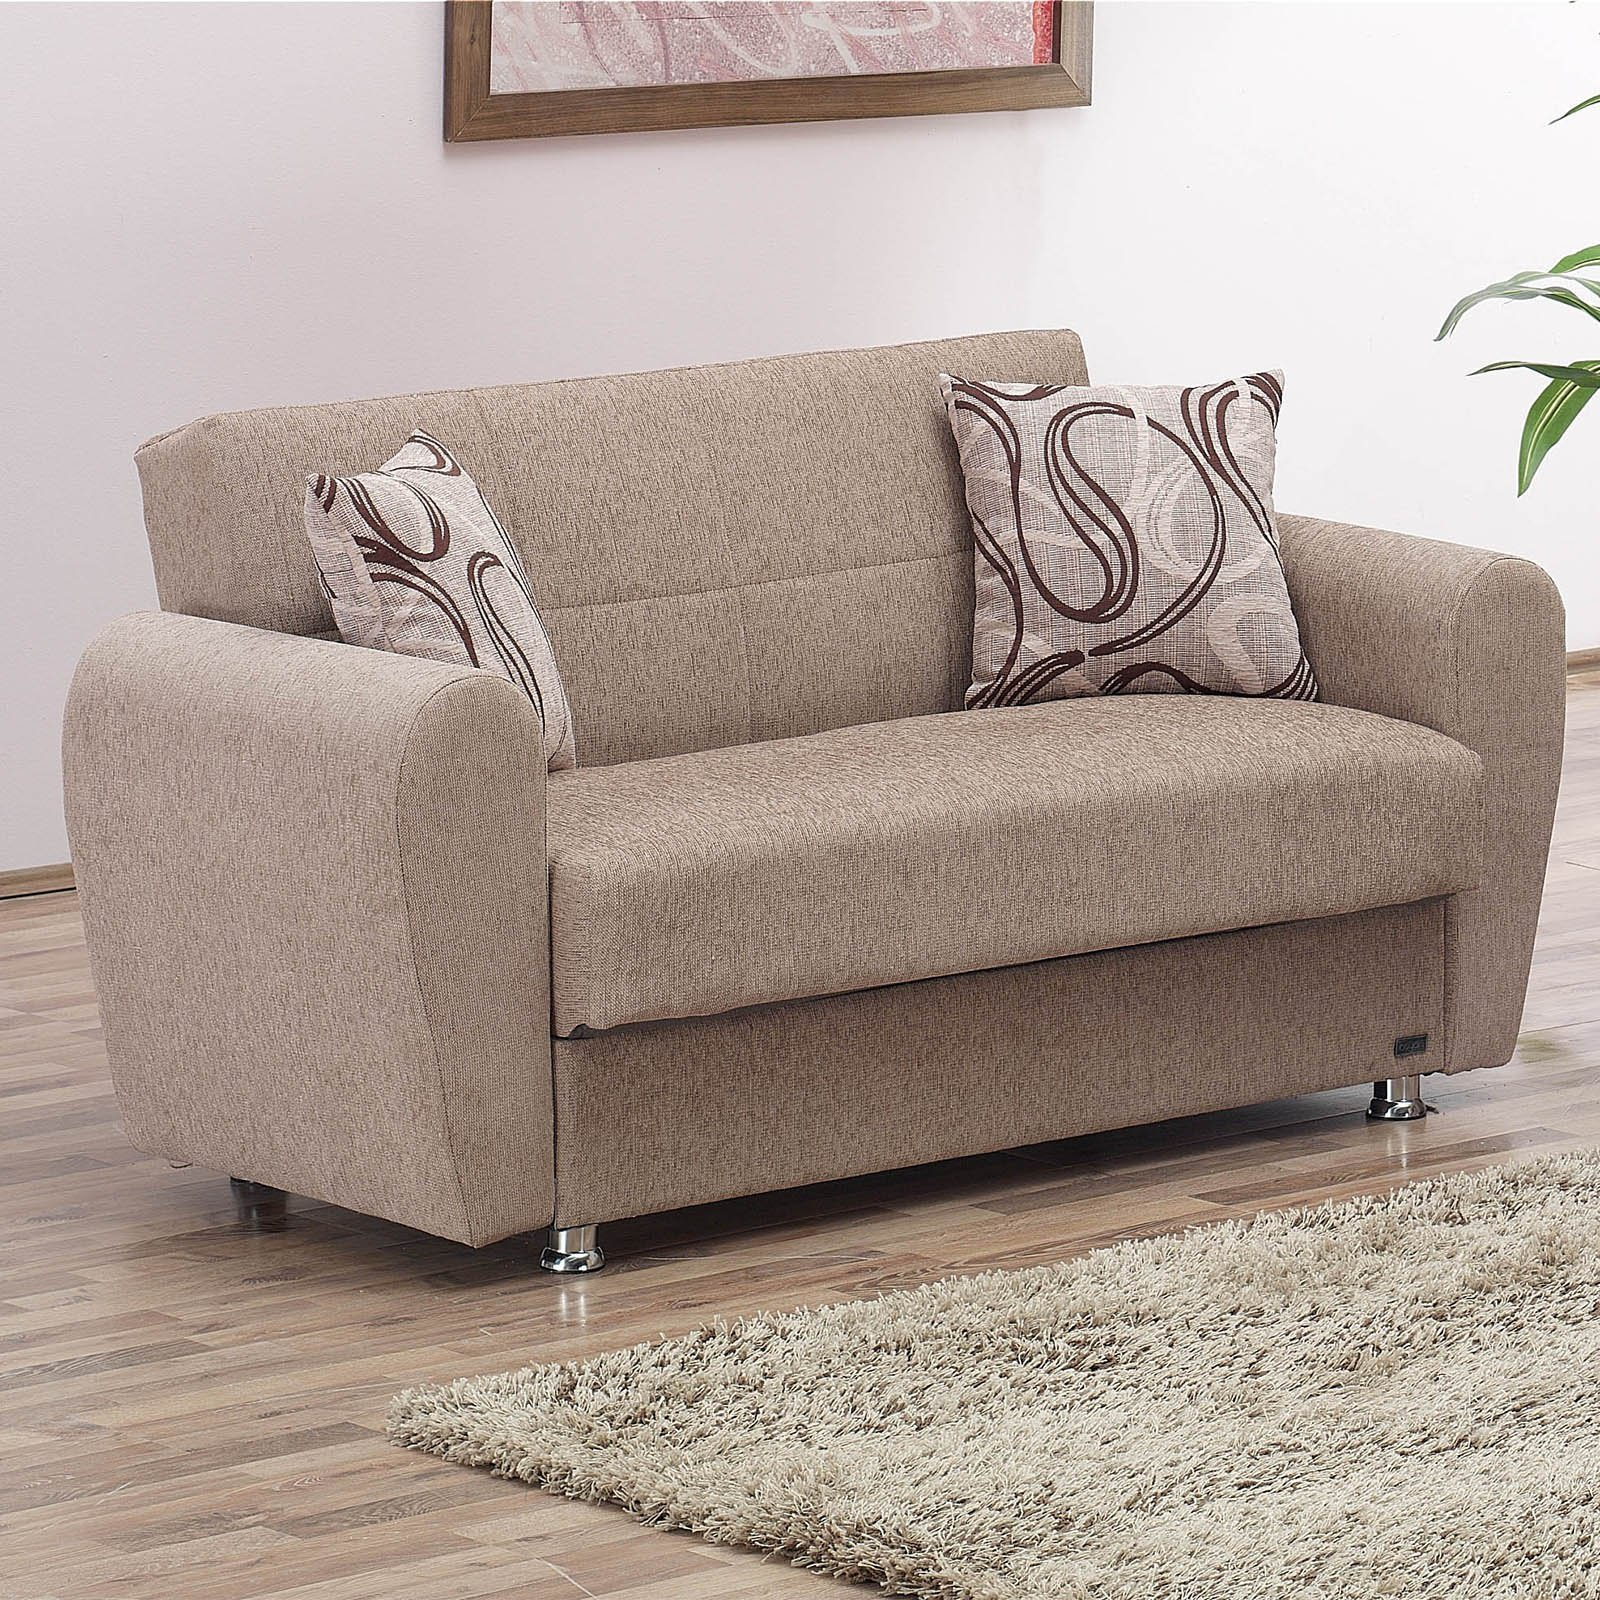 Empire Furniture USA Colorado Convertible Storage Loveseat